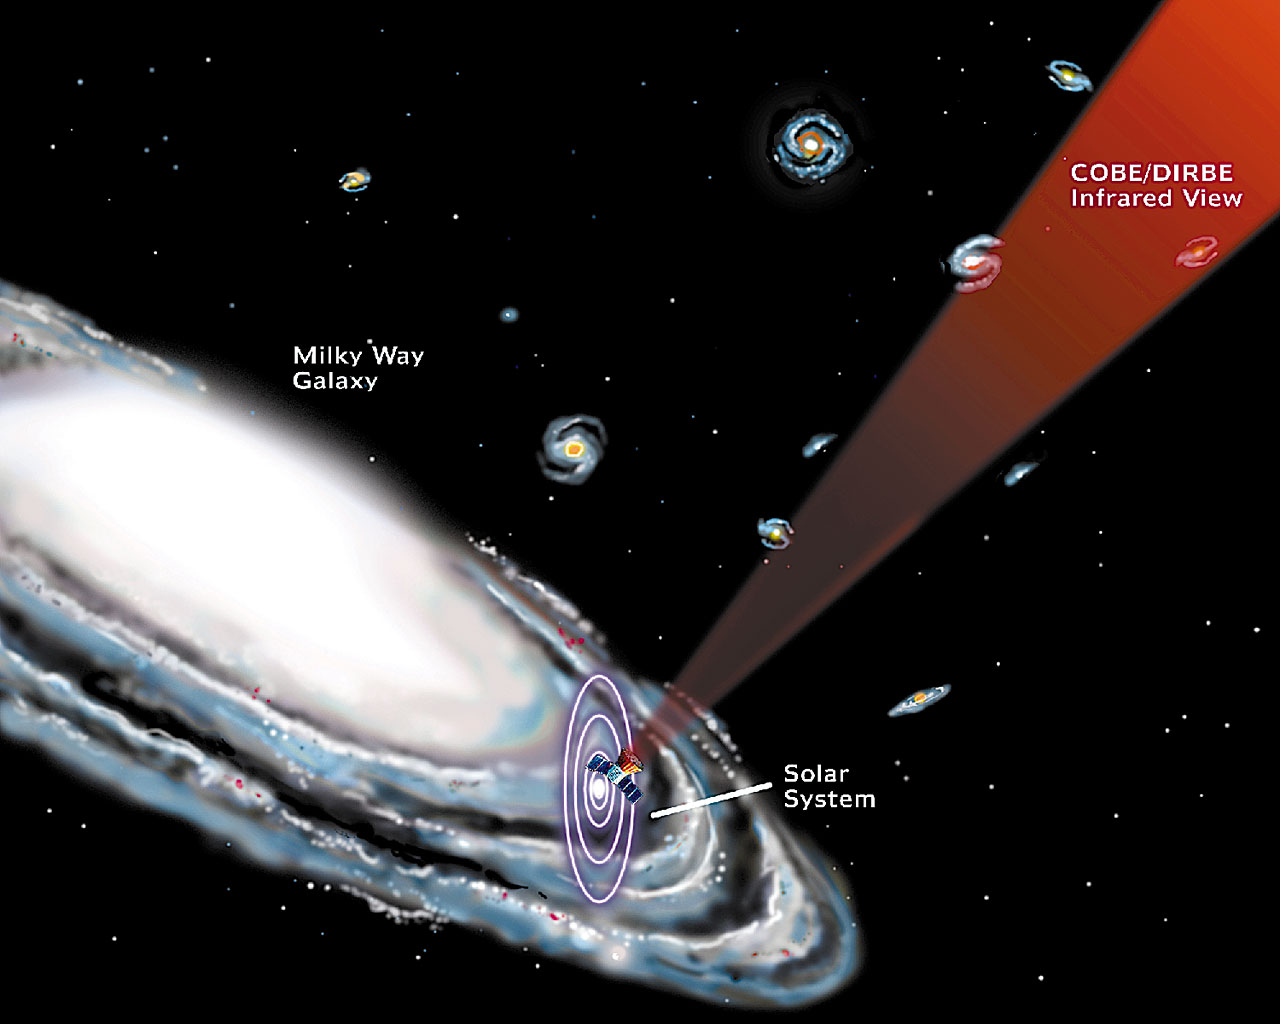 Diagram illustrating the relative direction and orientation of the spacecraft with respect to the Solar System, Milky Way, and nearby galaxies.